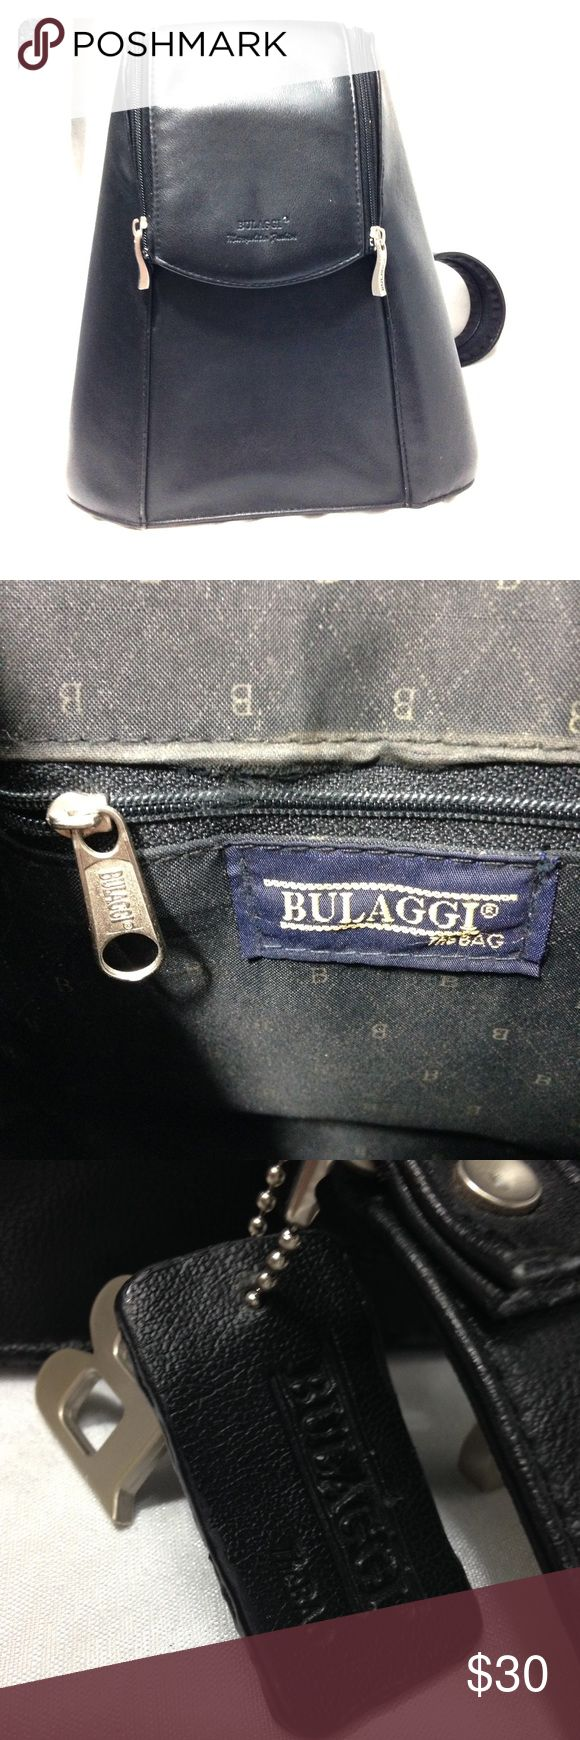 Bulaggi unisex bag, murse, backpack or shoulder This bag screams metrosexual. Nice and spacious for its unassuming size (about 10x9). Shows little wear if you look really close, but still a very nice looking accessory for guys or girls! Bags Backpacks